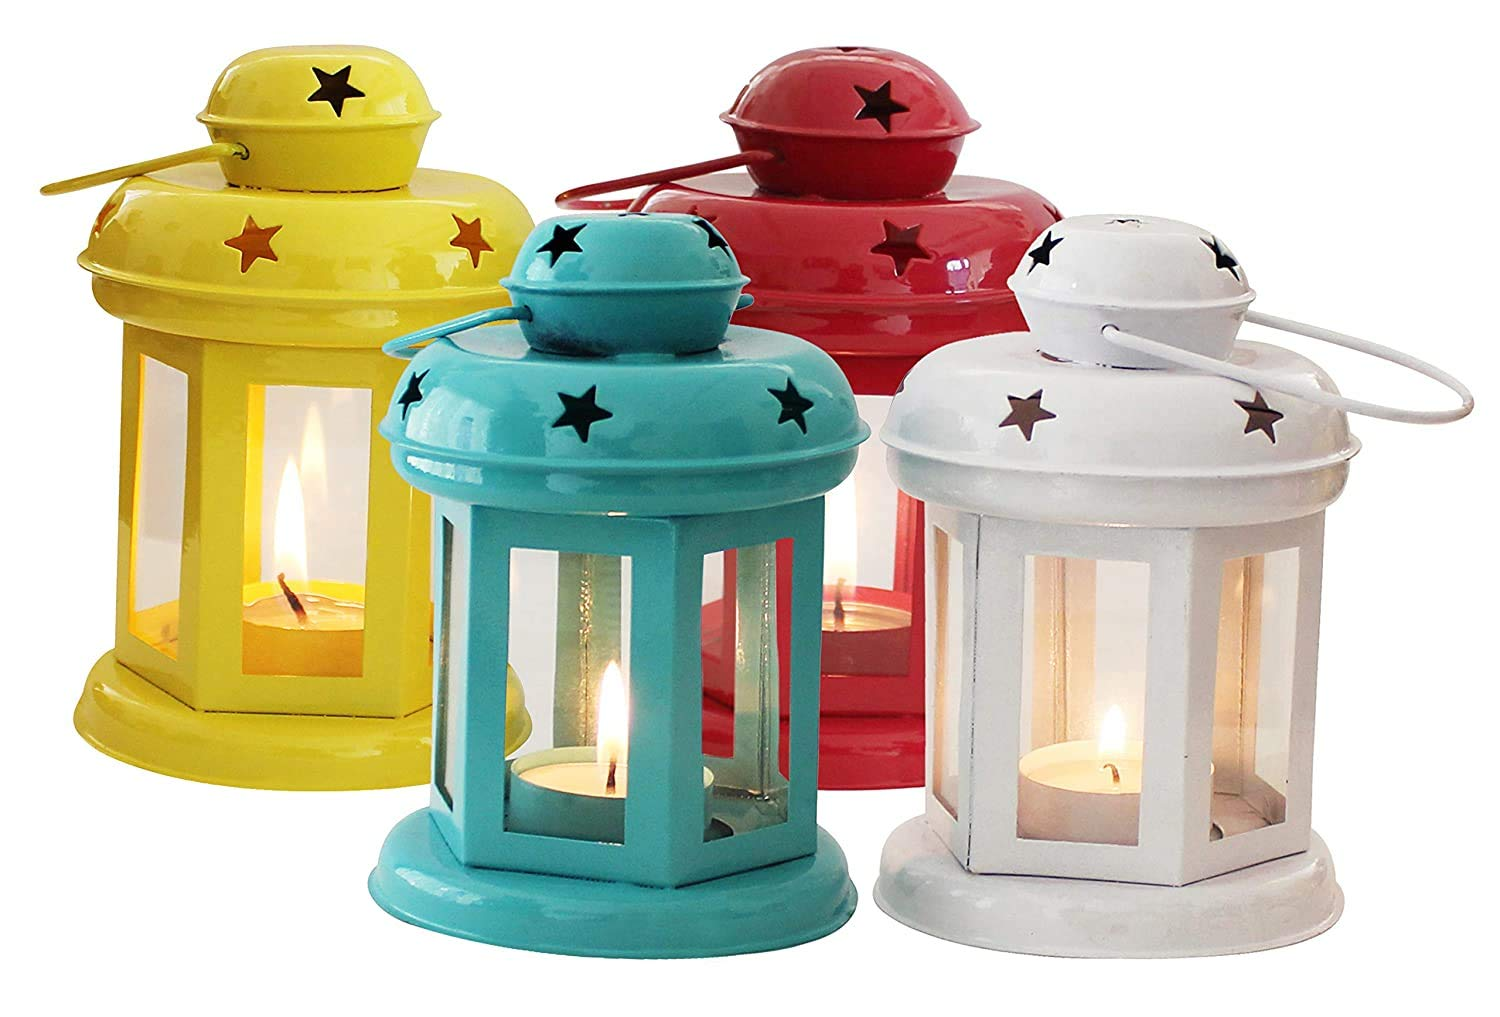 Extreme Karigari - Hanging Lantern Decorative Tea Light Holder Home Decor Red/Pink, White, Blue and Yellow Color Iron Lamp with Candle Tealights & Festive Decor 10x10x14 cm Set of 4